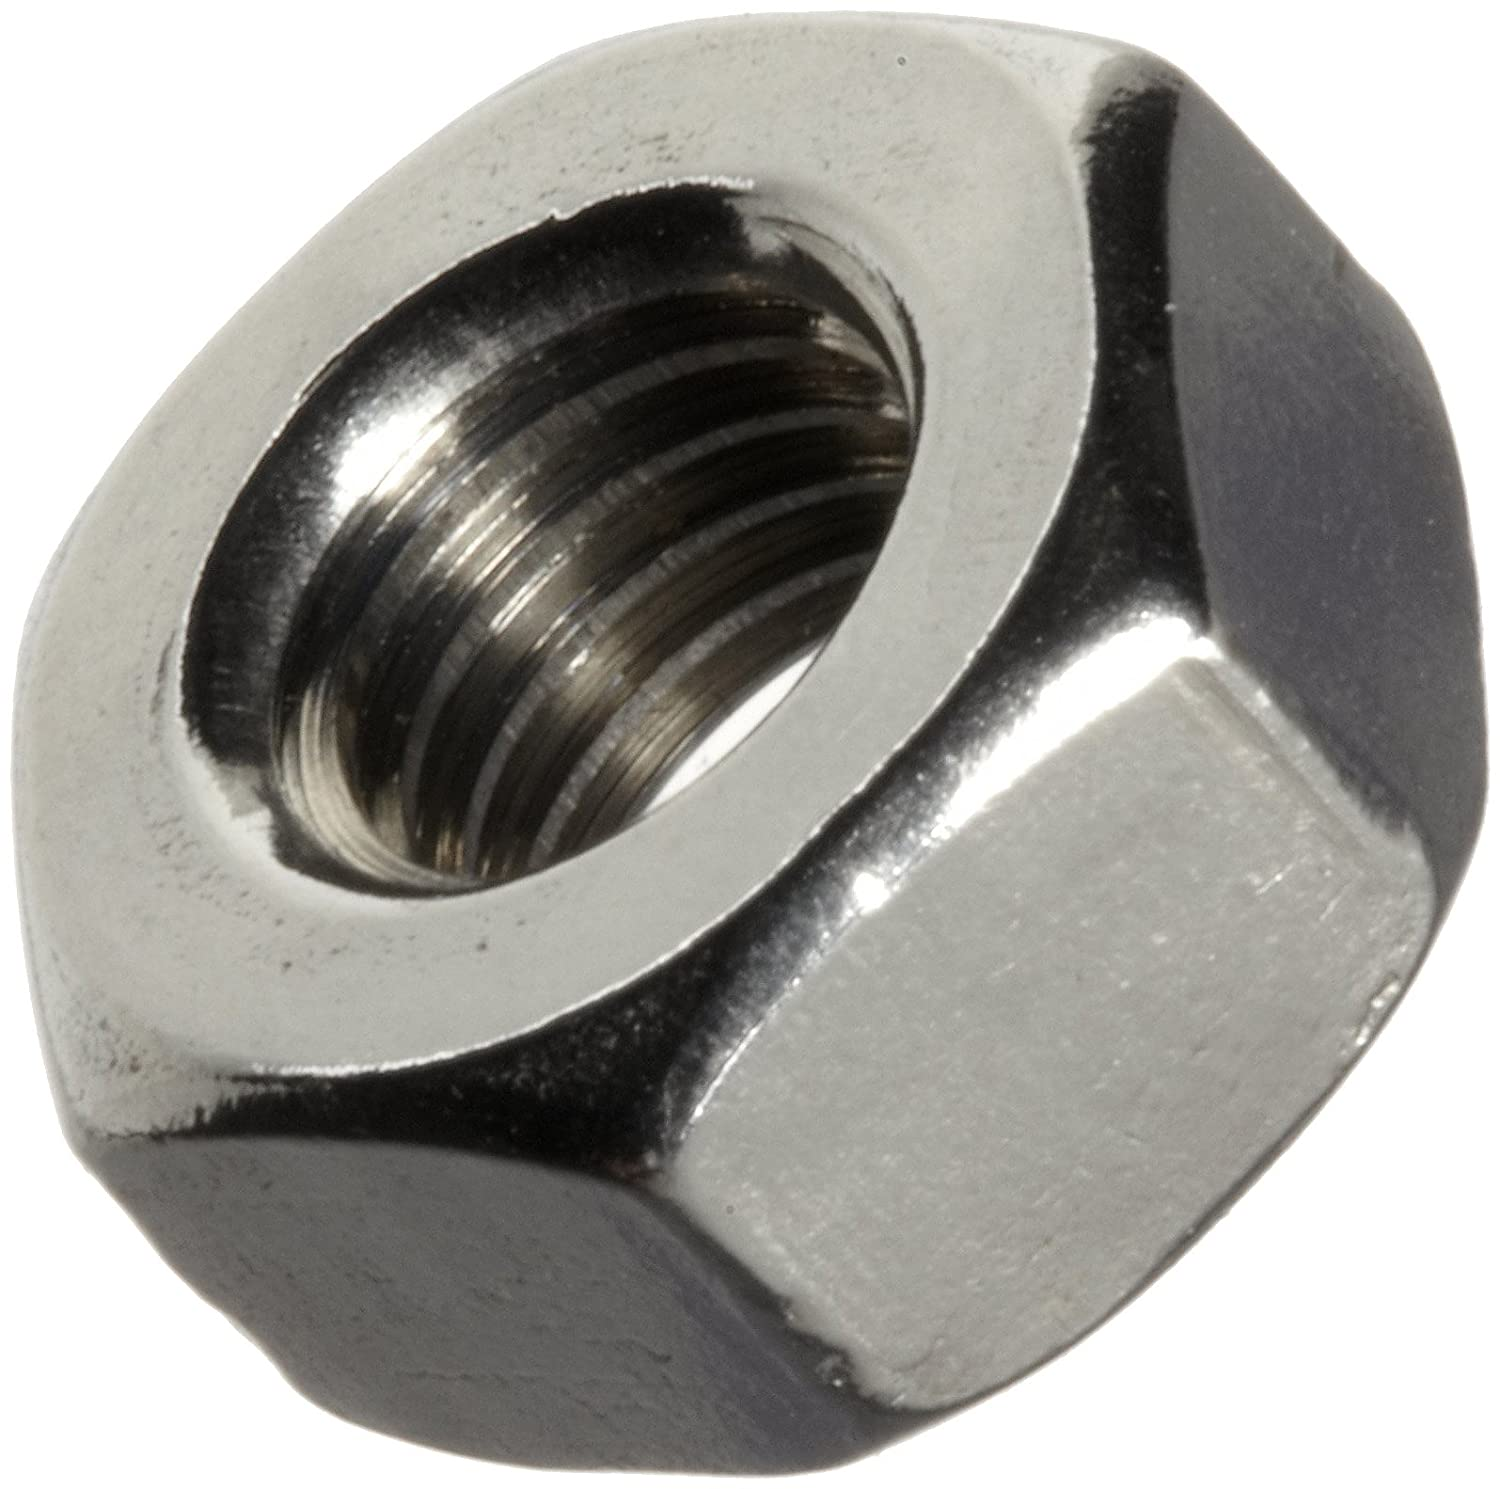 Pack of 25 Right Hand Threads 1//4-20 Threads Nickel-Based Alloy Hex Nut